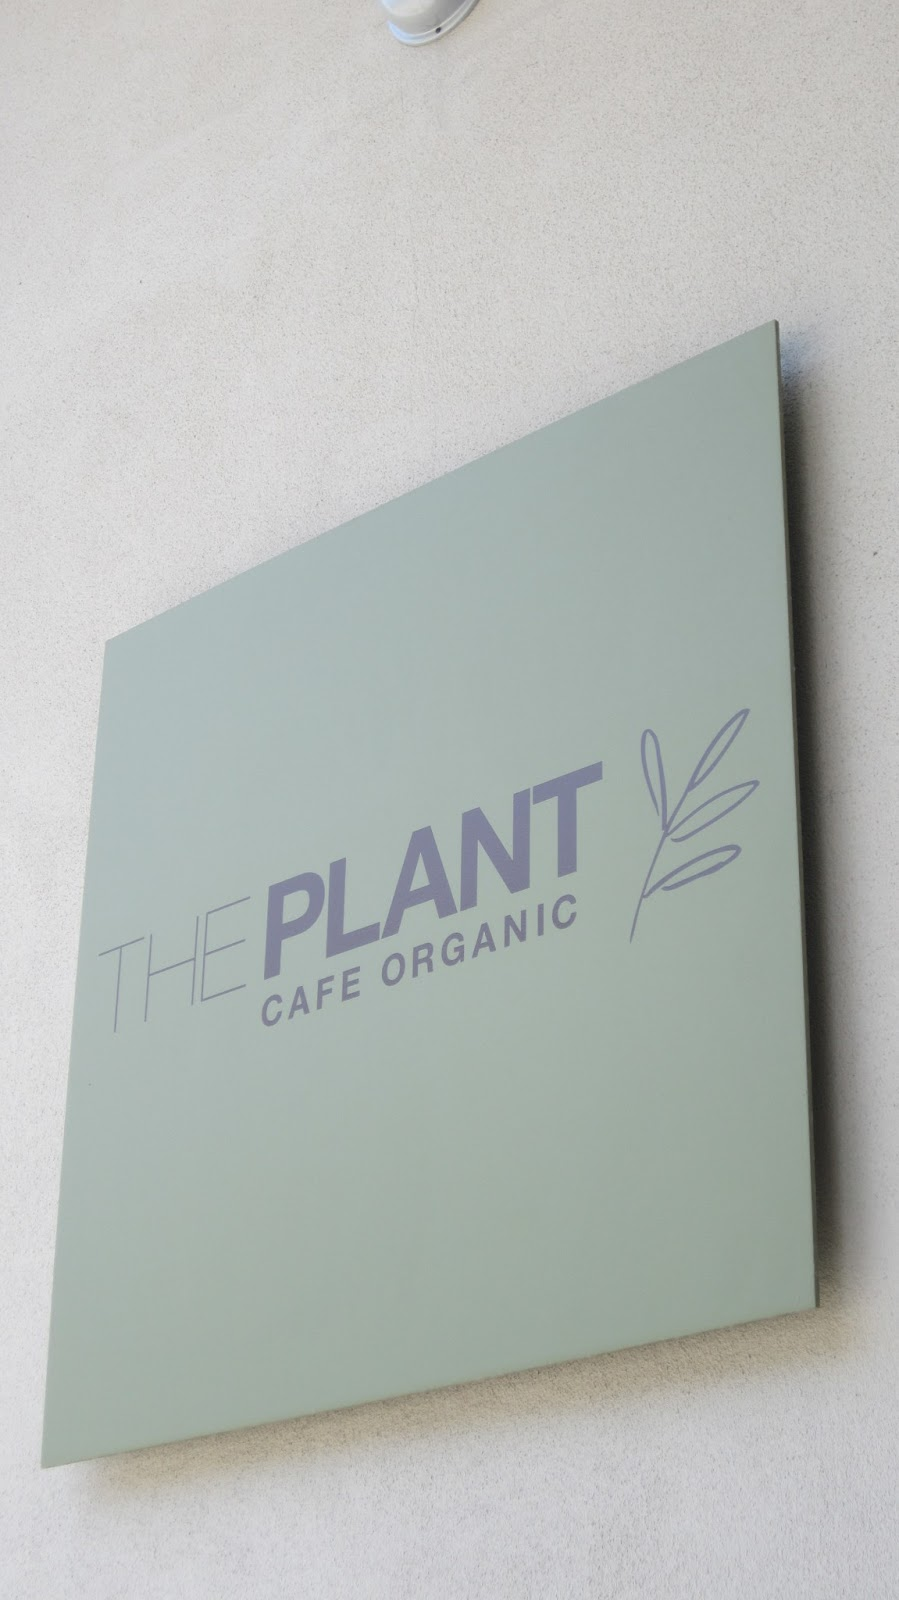 The Plant: Cafe Organic